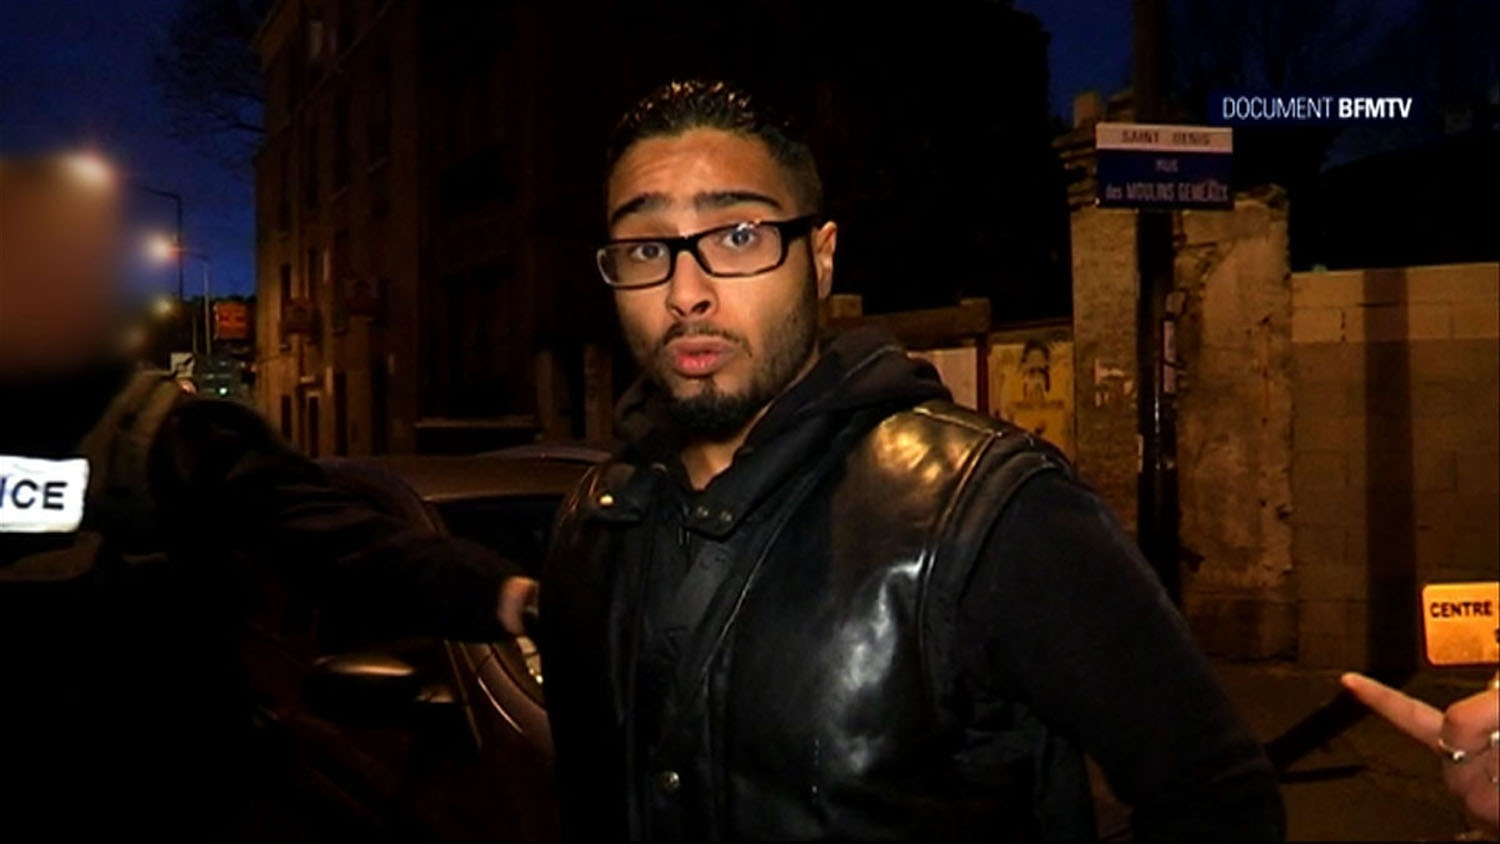 A image grab made from a handout video taken on November 18, 2015 and released on November 25, 2015 by BFMTV shows Jawad Bendaoud, the man who allegedly lent his Paris suburb apartment to the suspected ringleader of the attacks on Paris, being arrested in